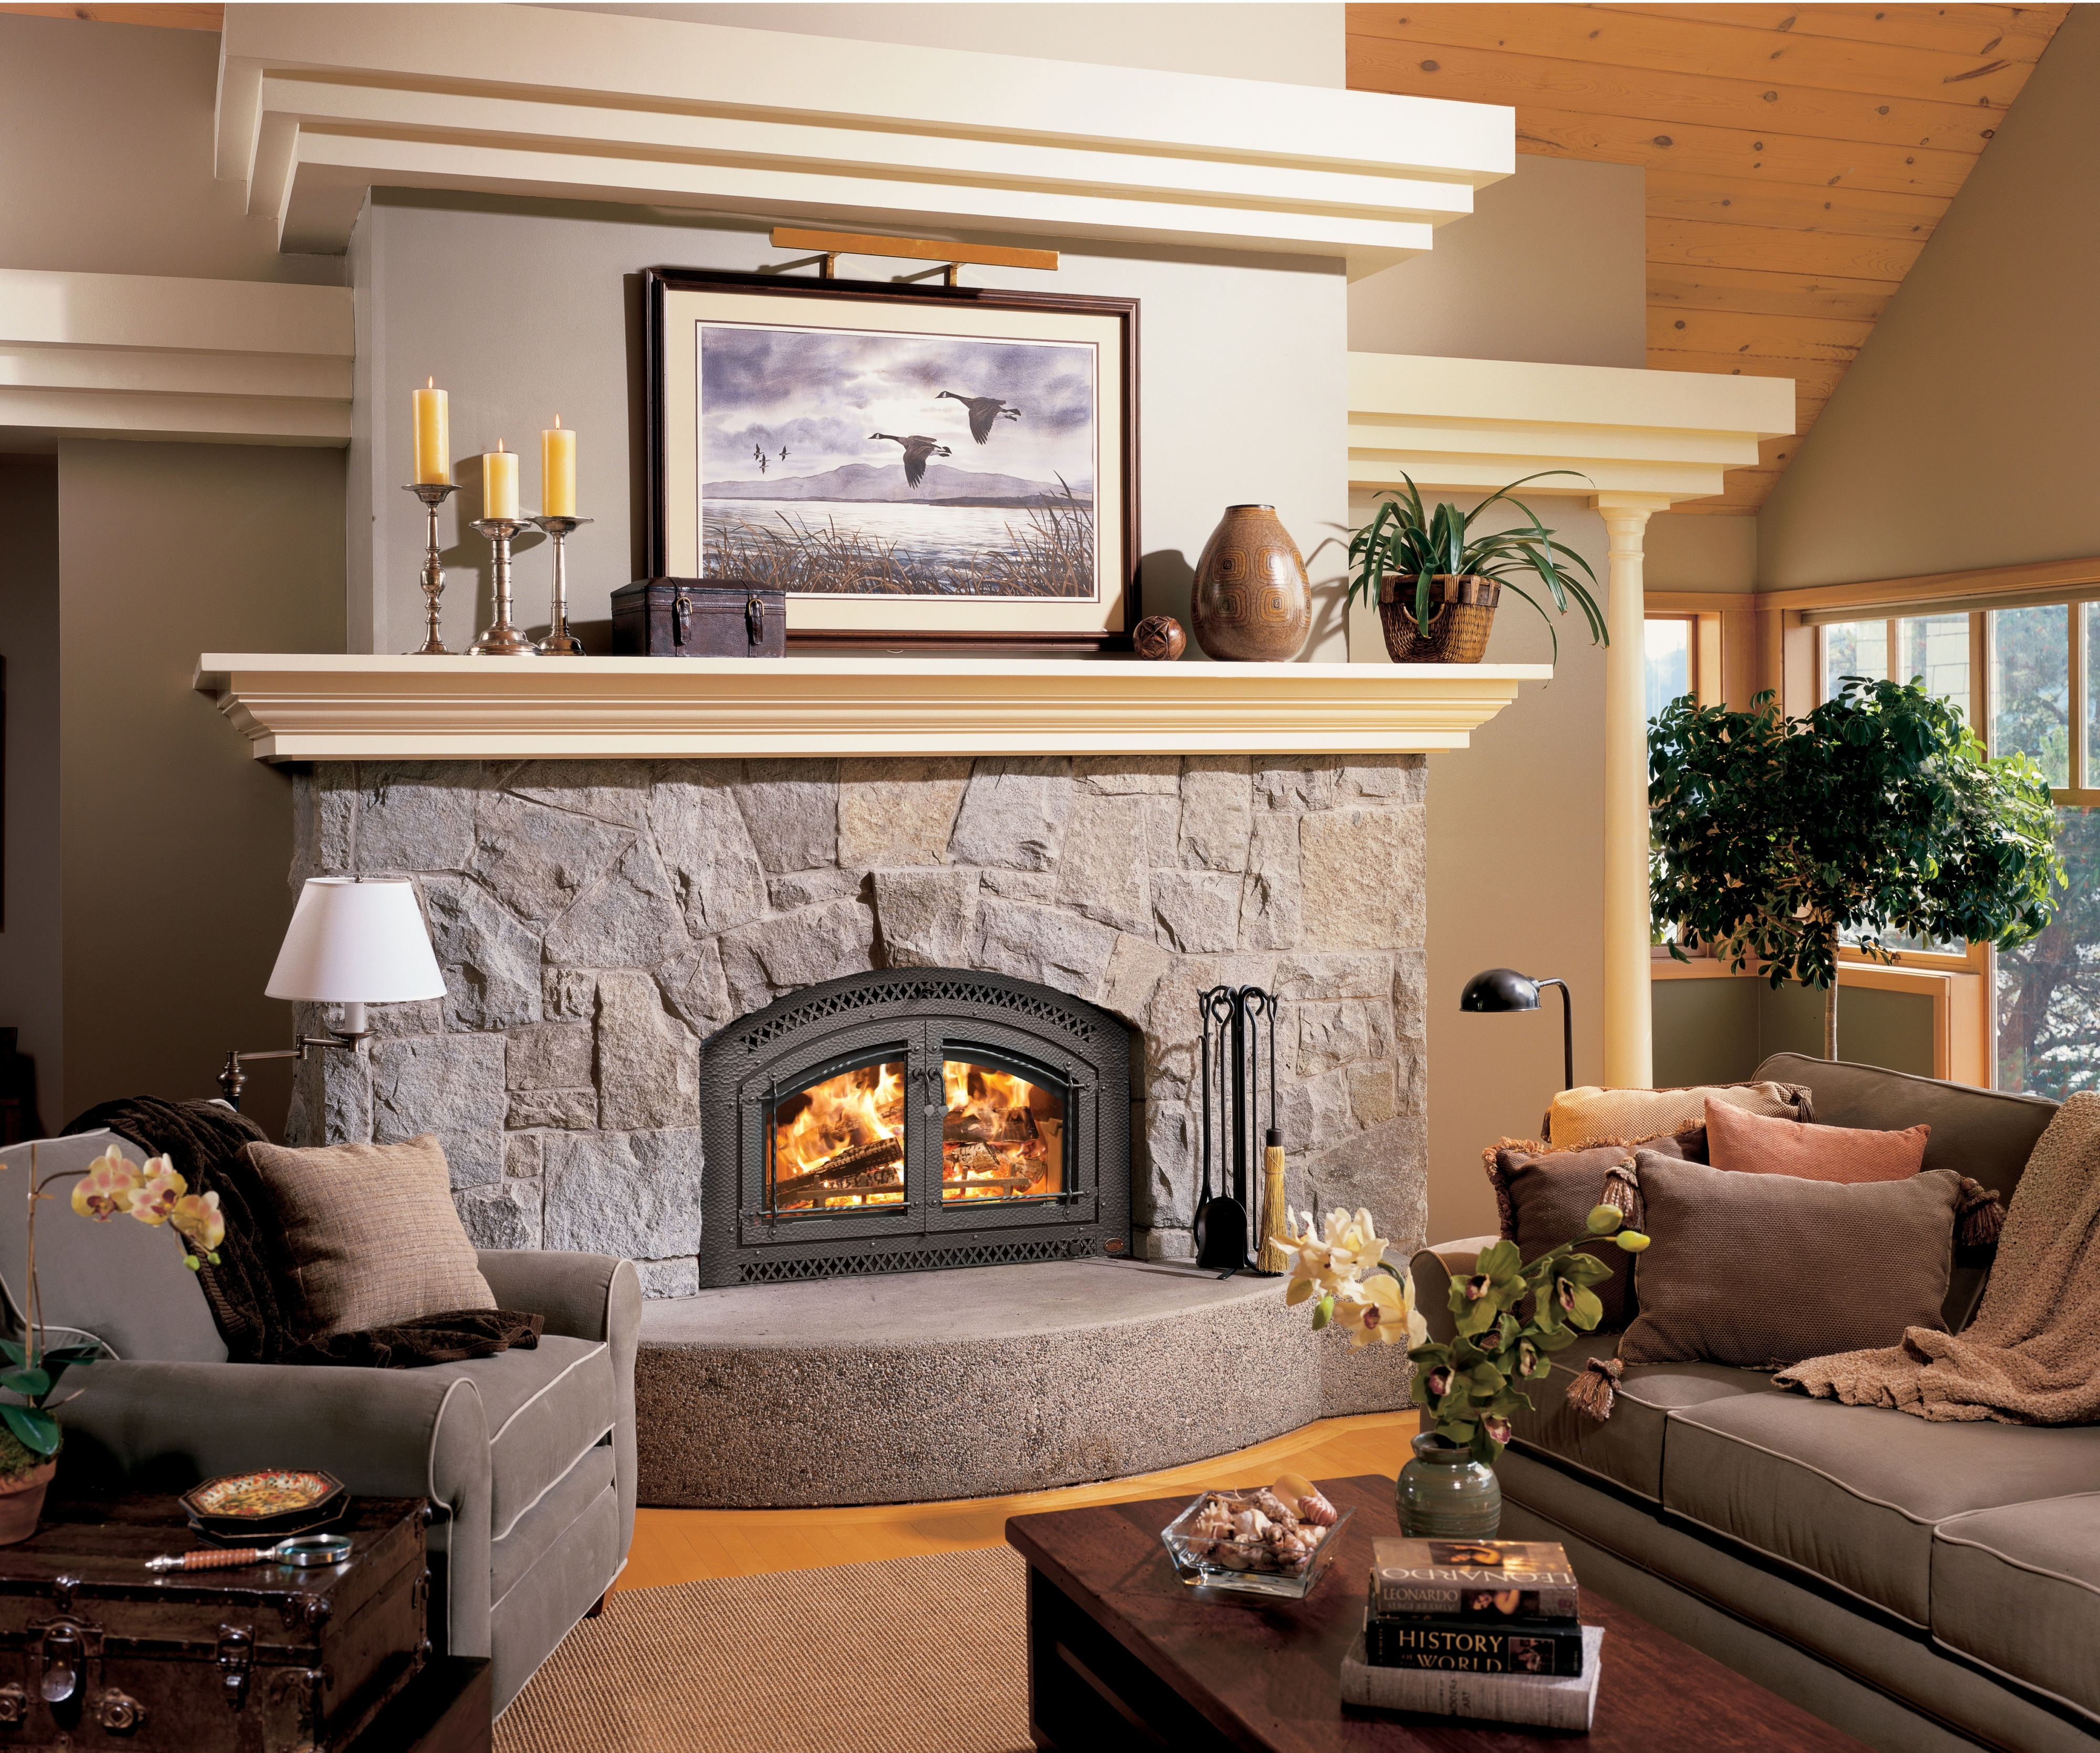 Image of the 44 Elite woodburning fireplace featuring a traditional face.